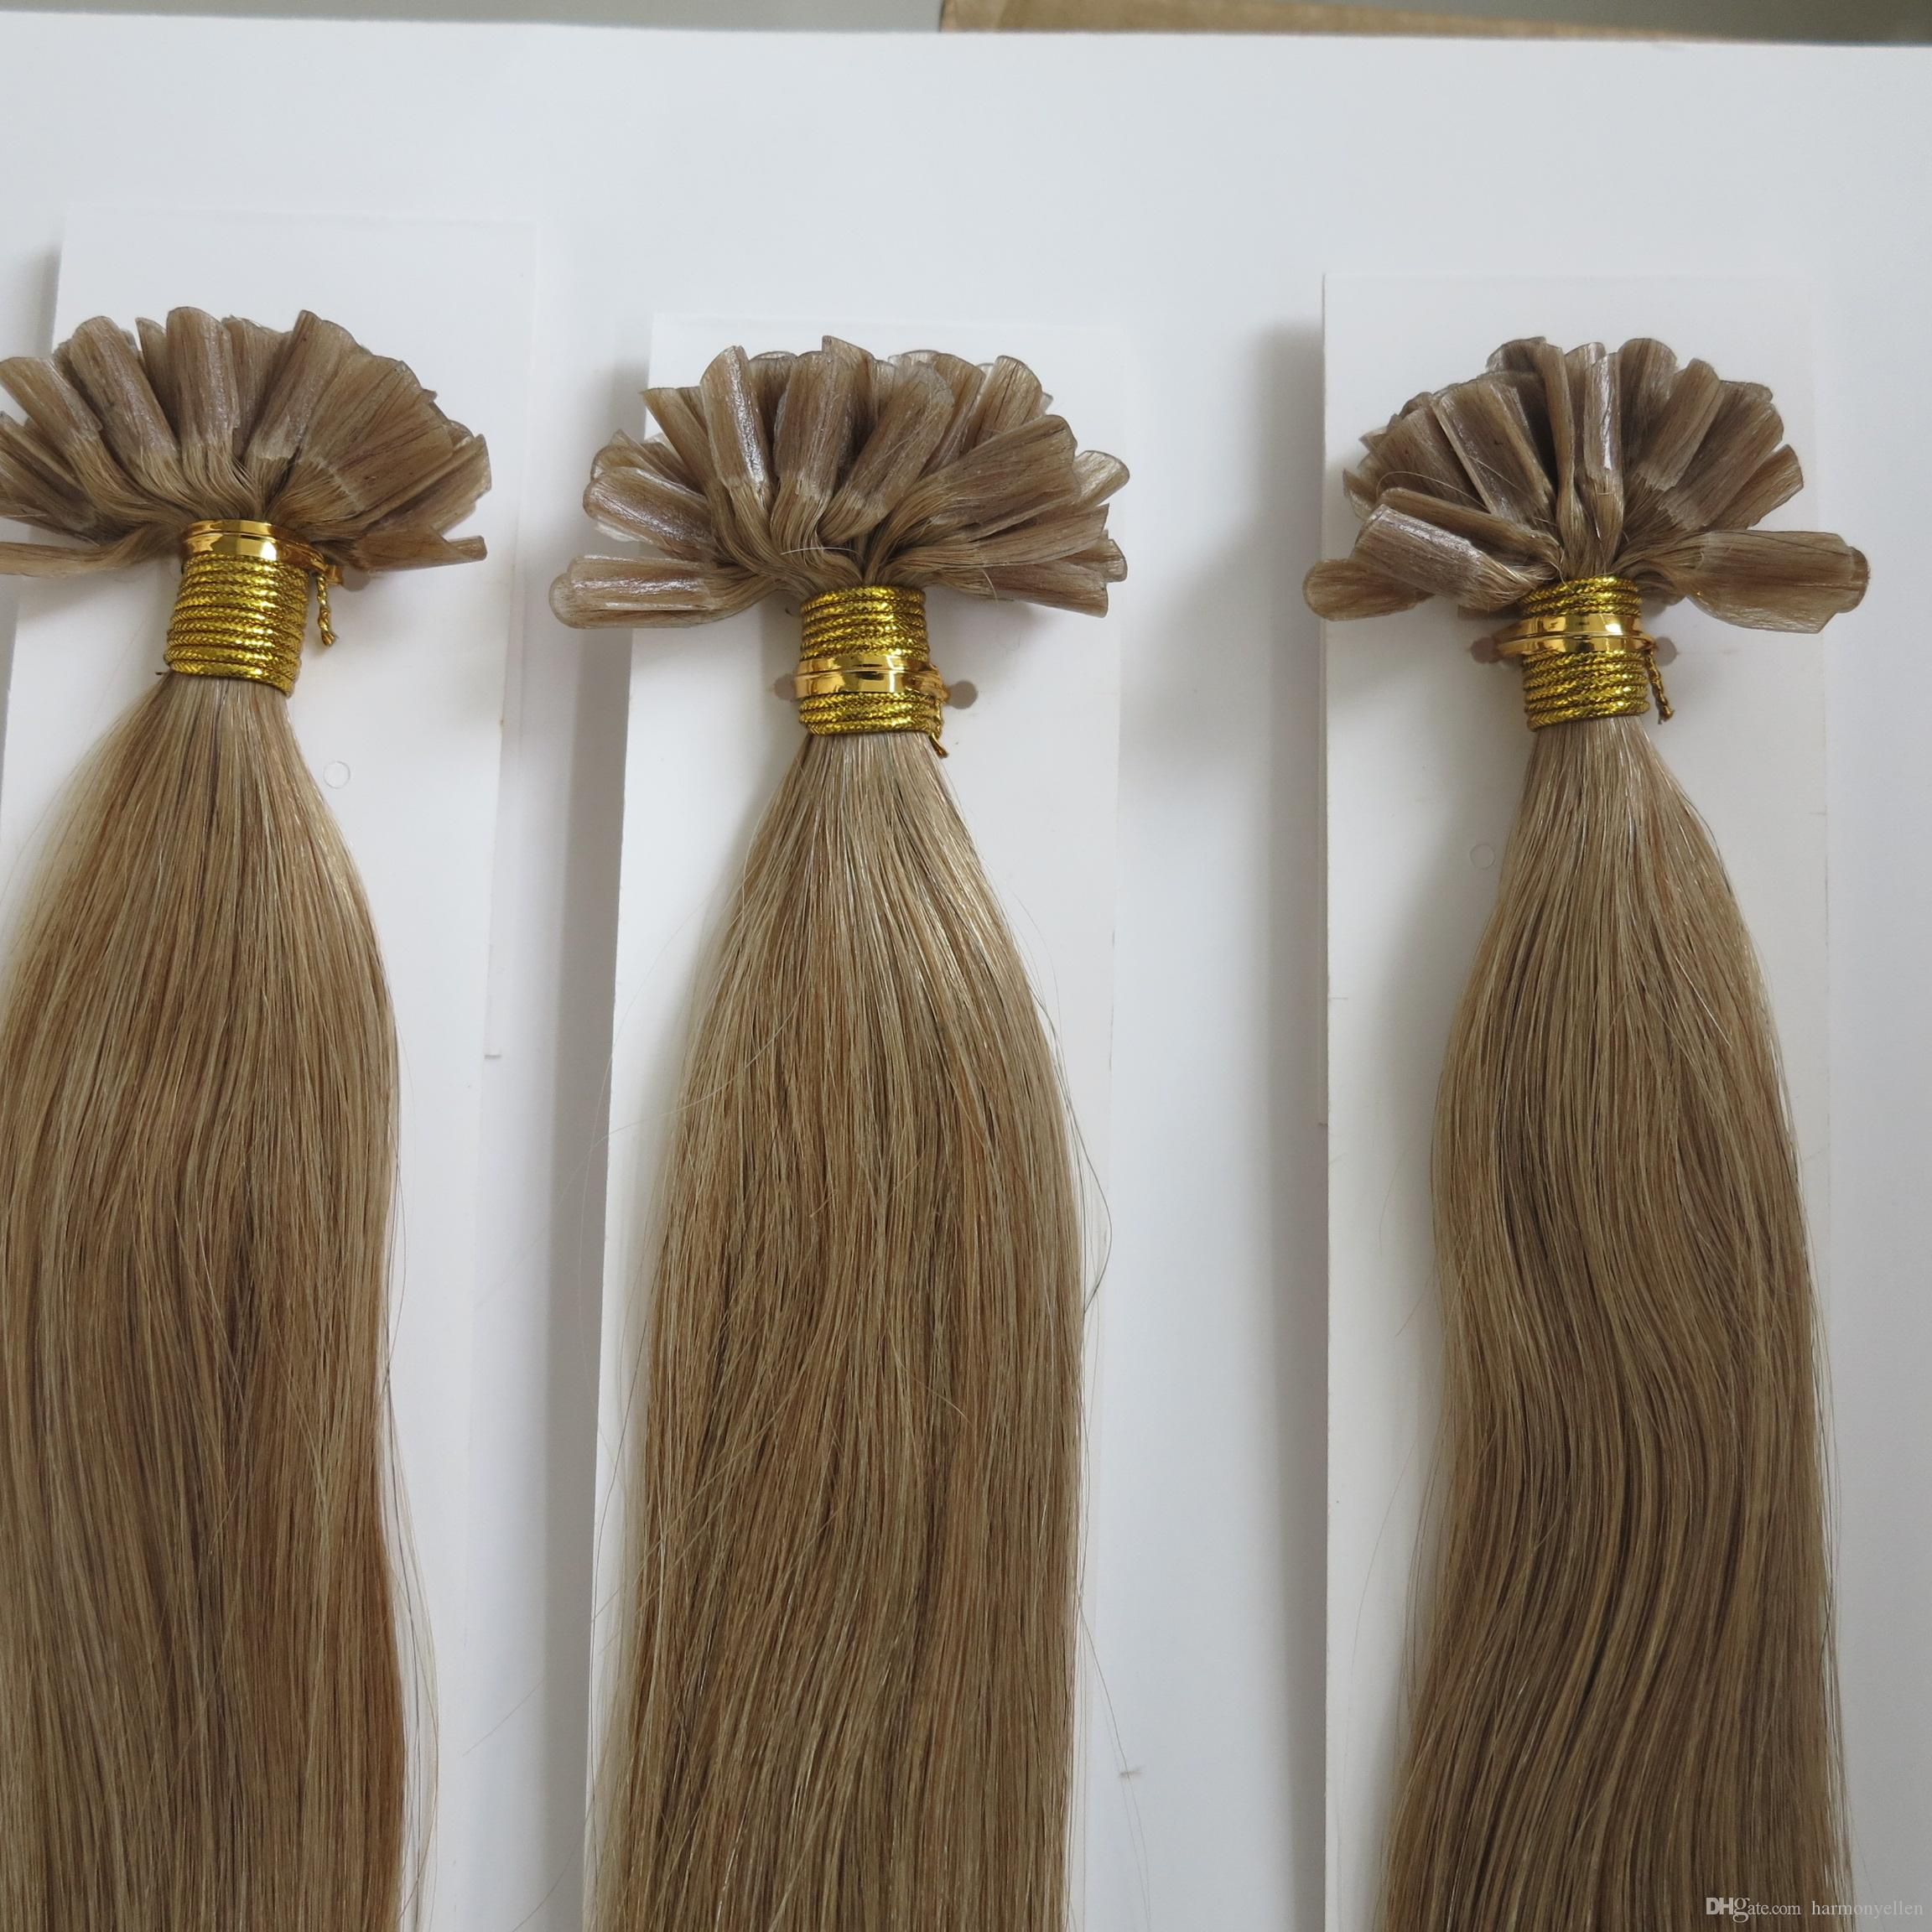 Pre Bonded Human Hair Extensions 1gstrand 16inch 26inch Nail U Tip